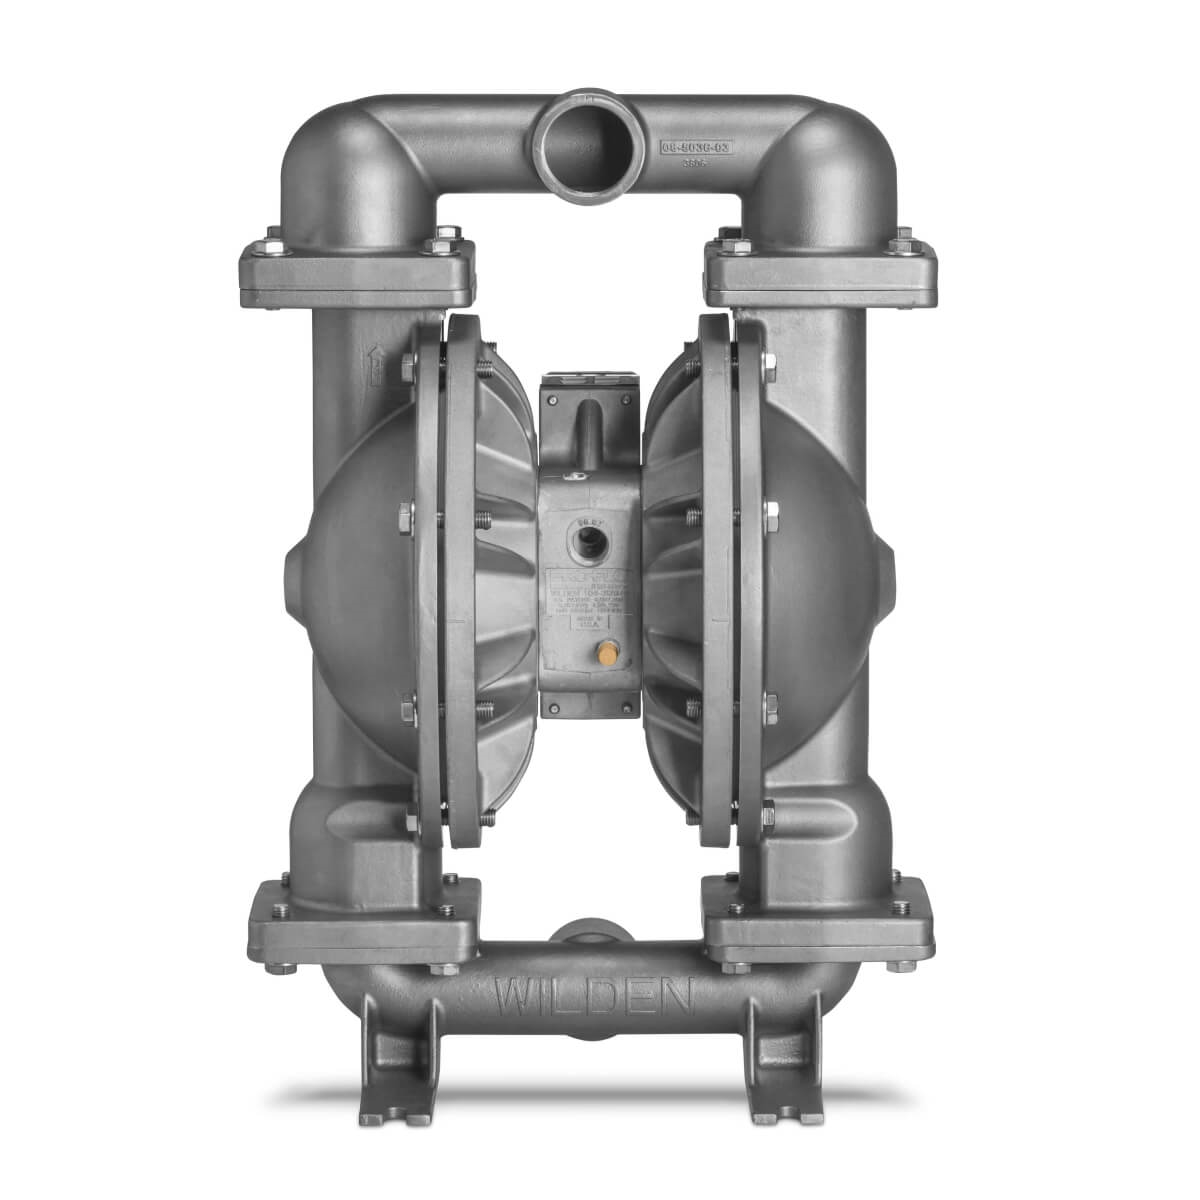 Wilden xps820ssaaatwstfstf aodd pump 2 pro flo shift bolted wilden xps820ssaaatwstfstf aodd pump 2 pro flo shift bolted stainless steel ccuart Image collections